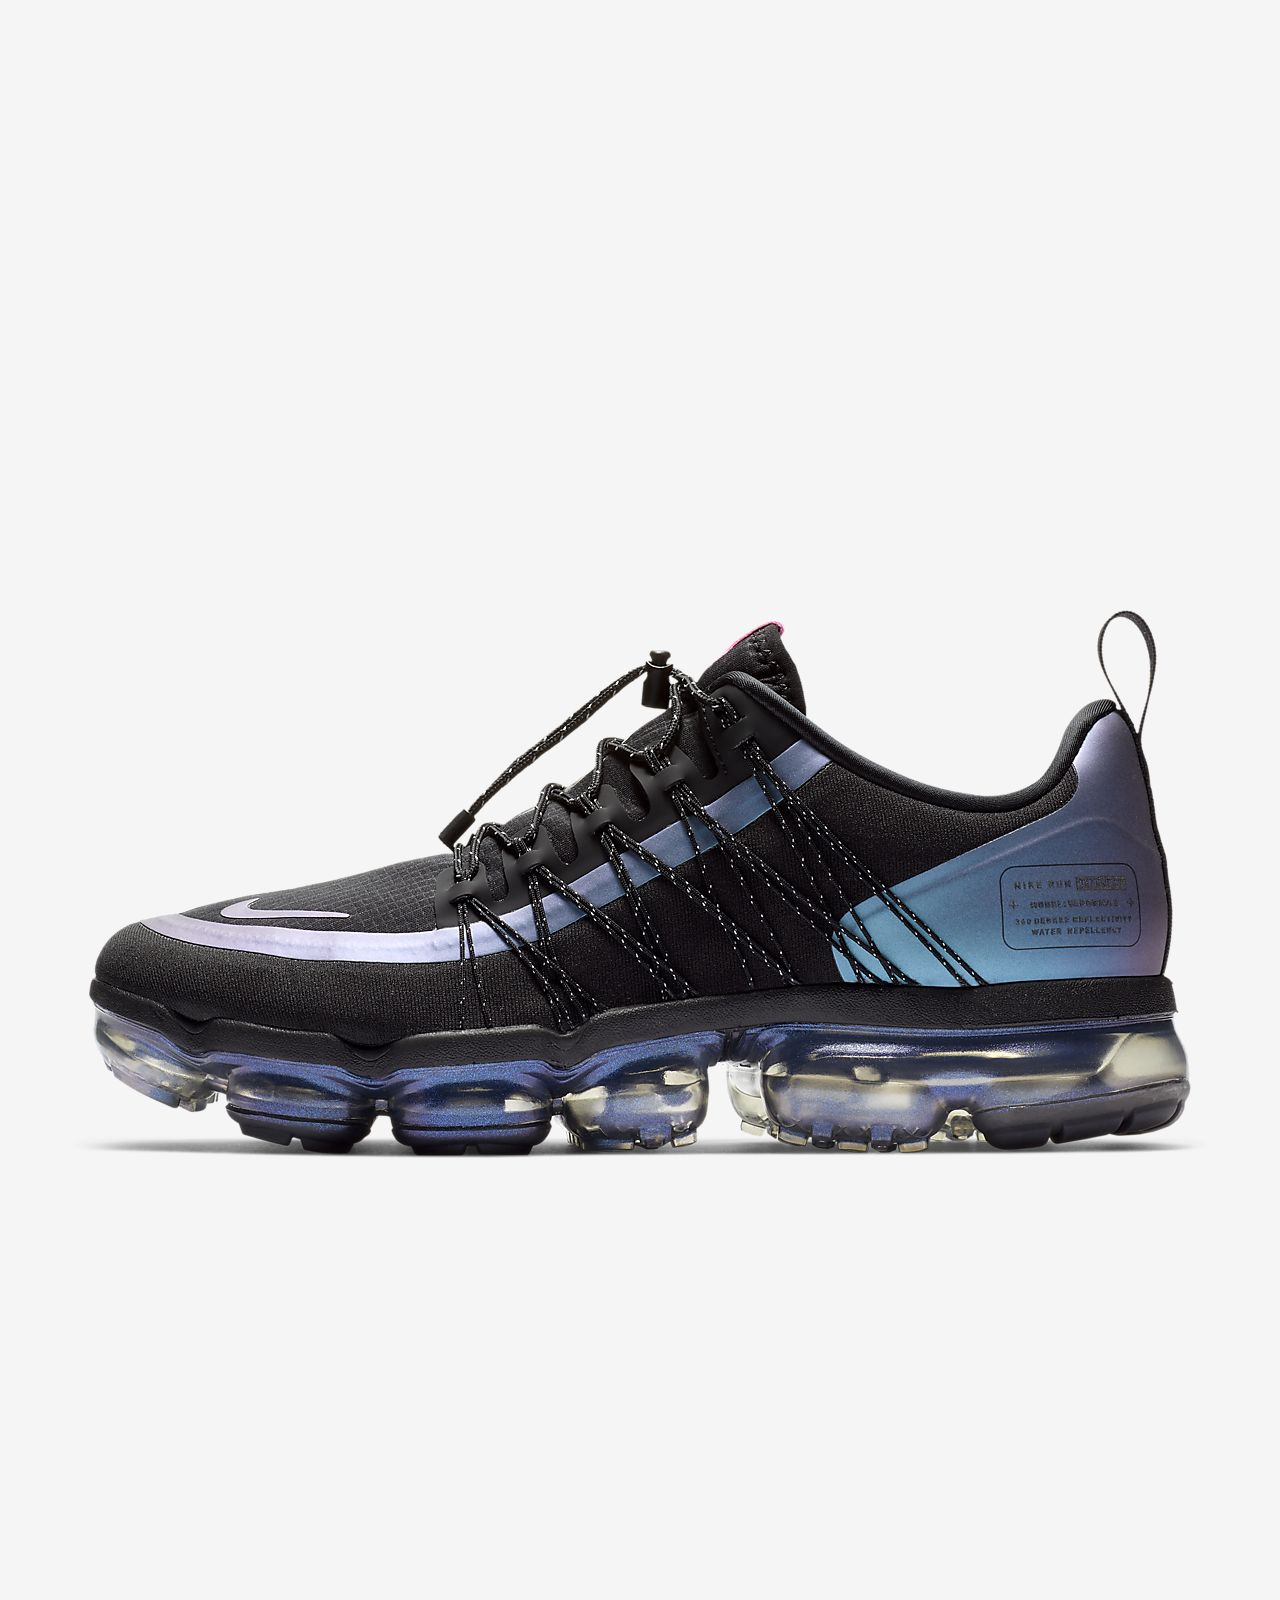 hot sale online bc6ab 31471 ... Chaussure Nike Air VaporMax Utility pour Homme